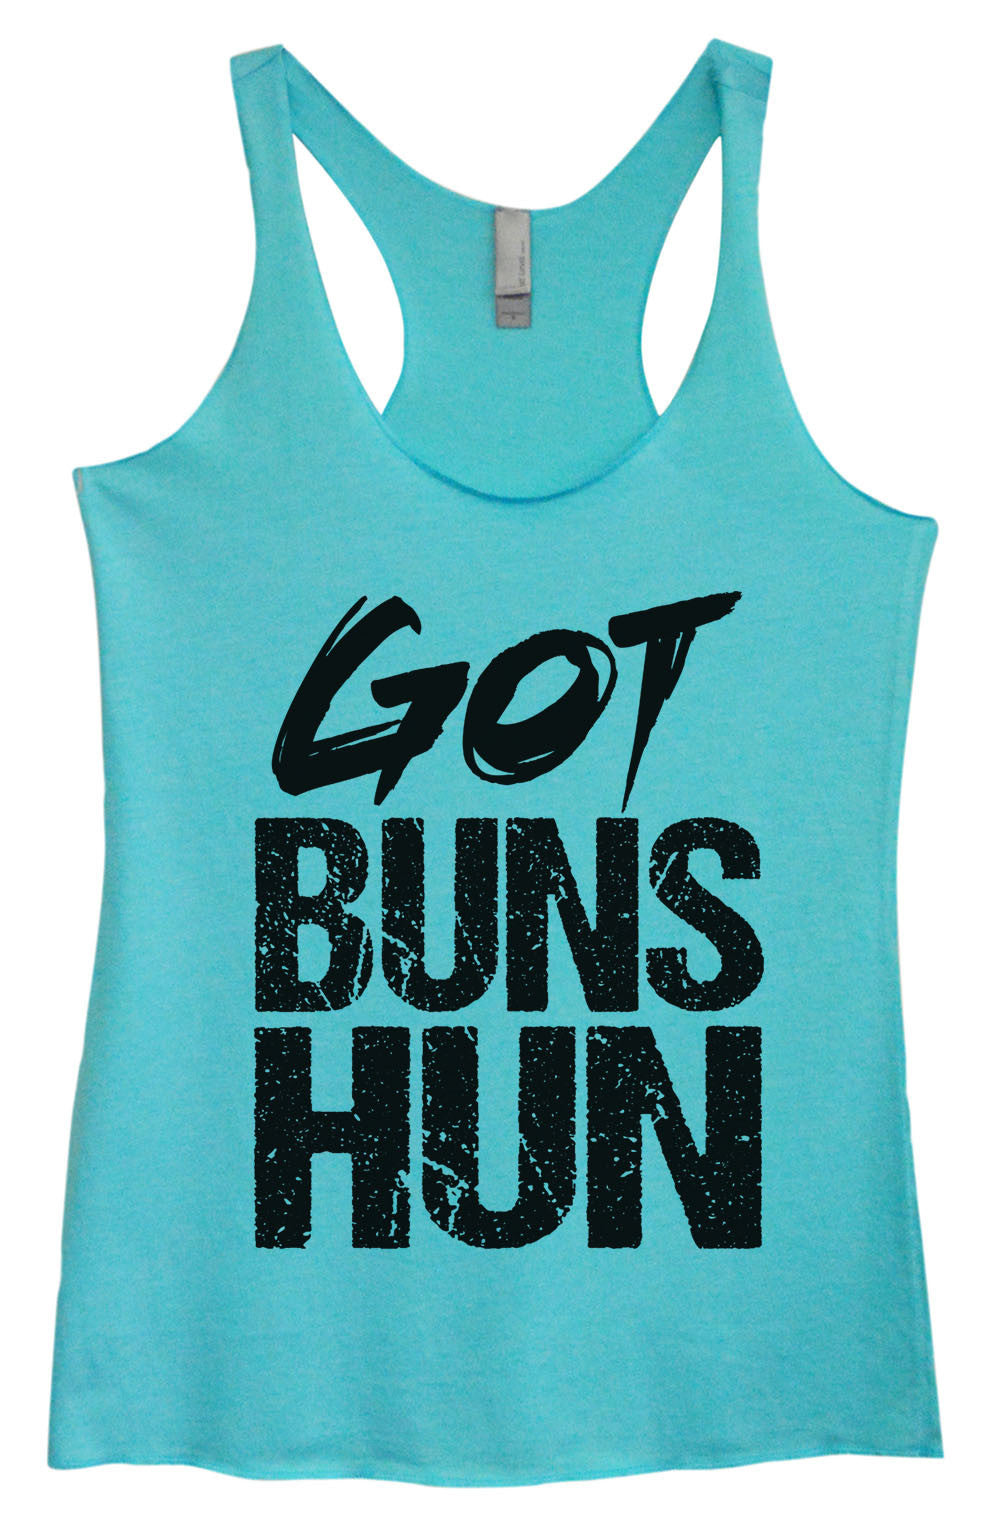 Womens Fashion Triblend Tank Top - Got Buns Hun - Tri-1006 - Funny Shirts Tank Tops Burnouts and Triblends  - 2